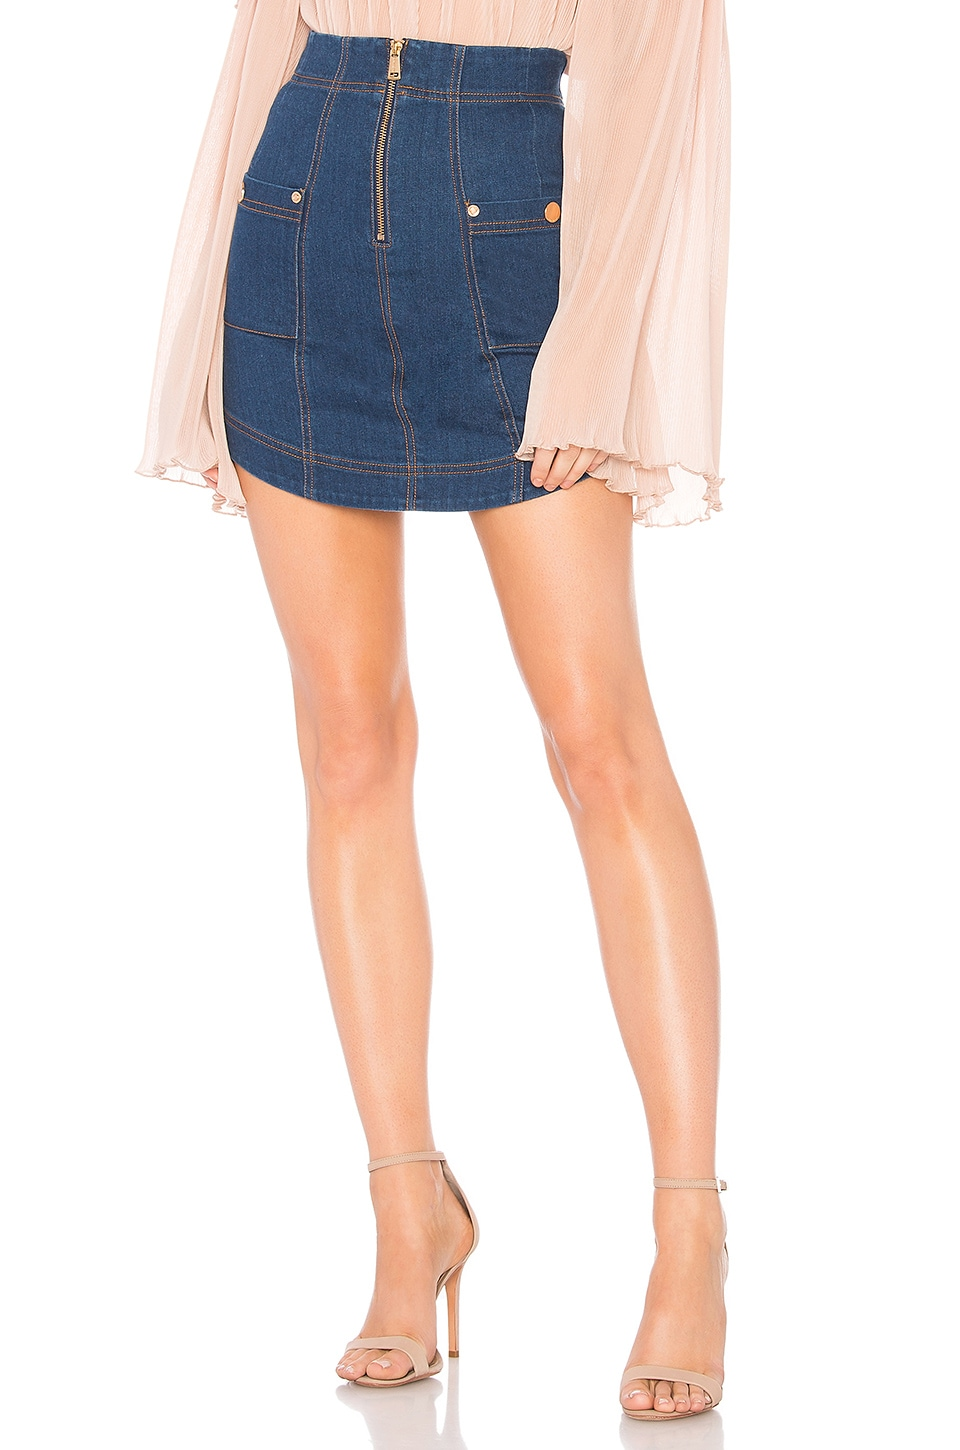 Alice McCall Thinking About You Skirt in Indigo